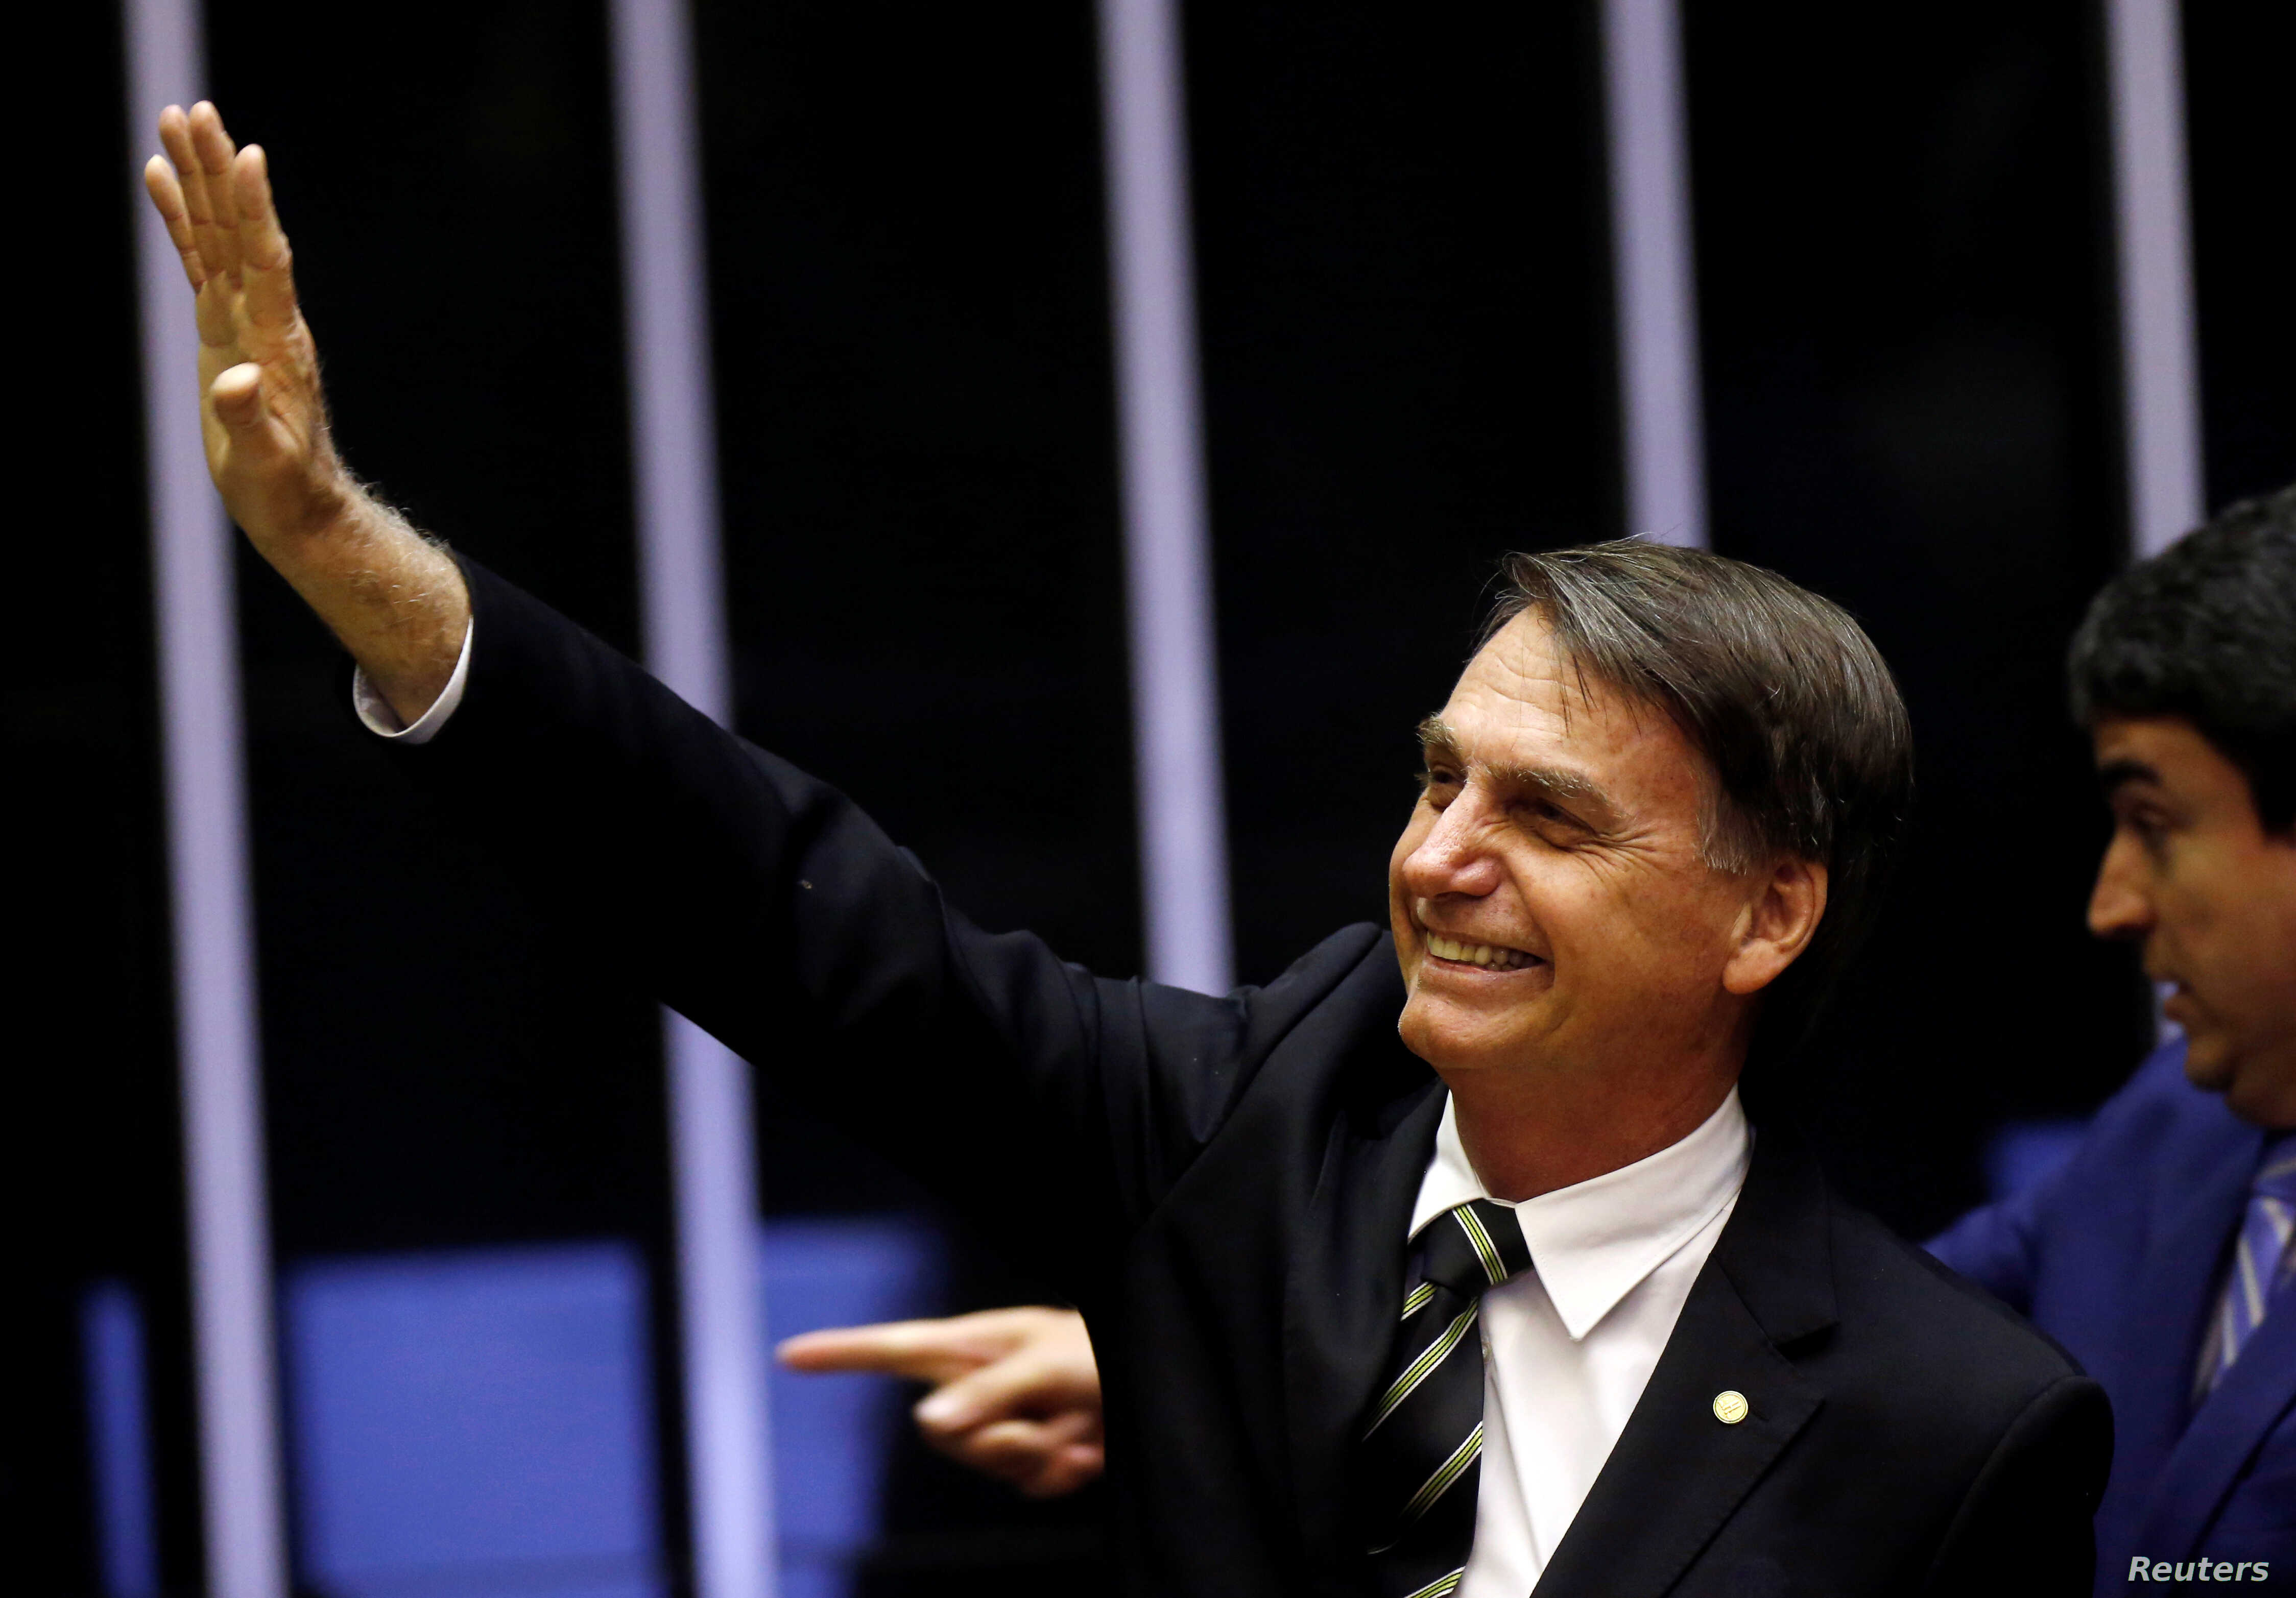 Brazil Economy Key to Bolsonaro Win, But Will He Deliver? | Voice of